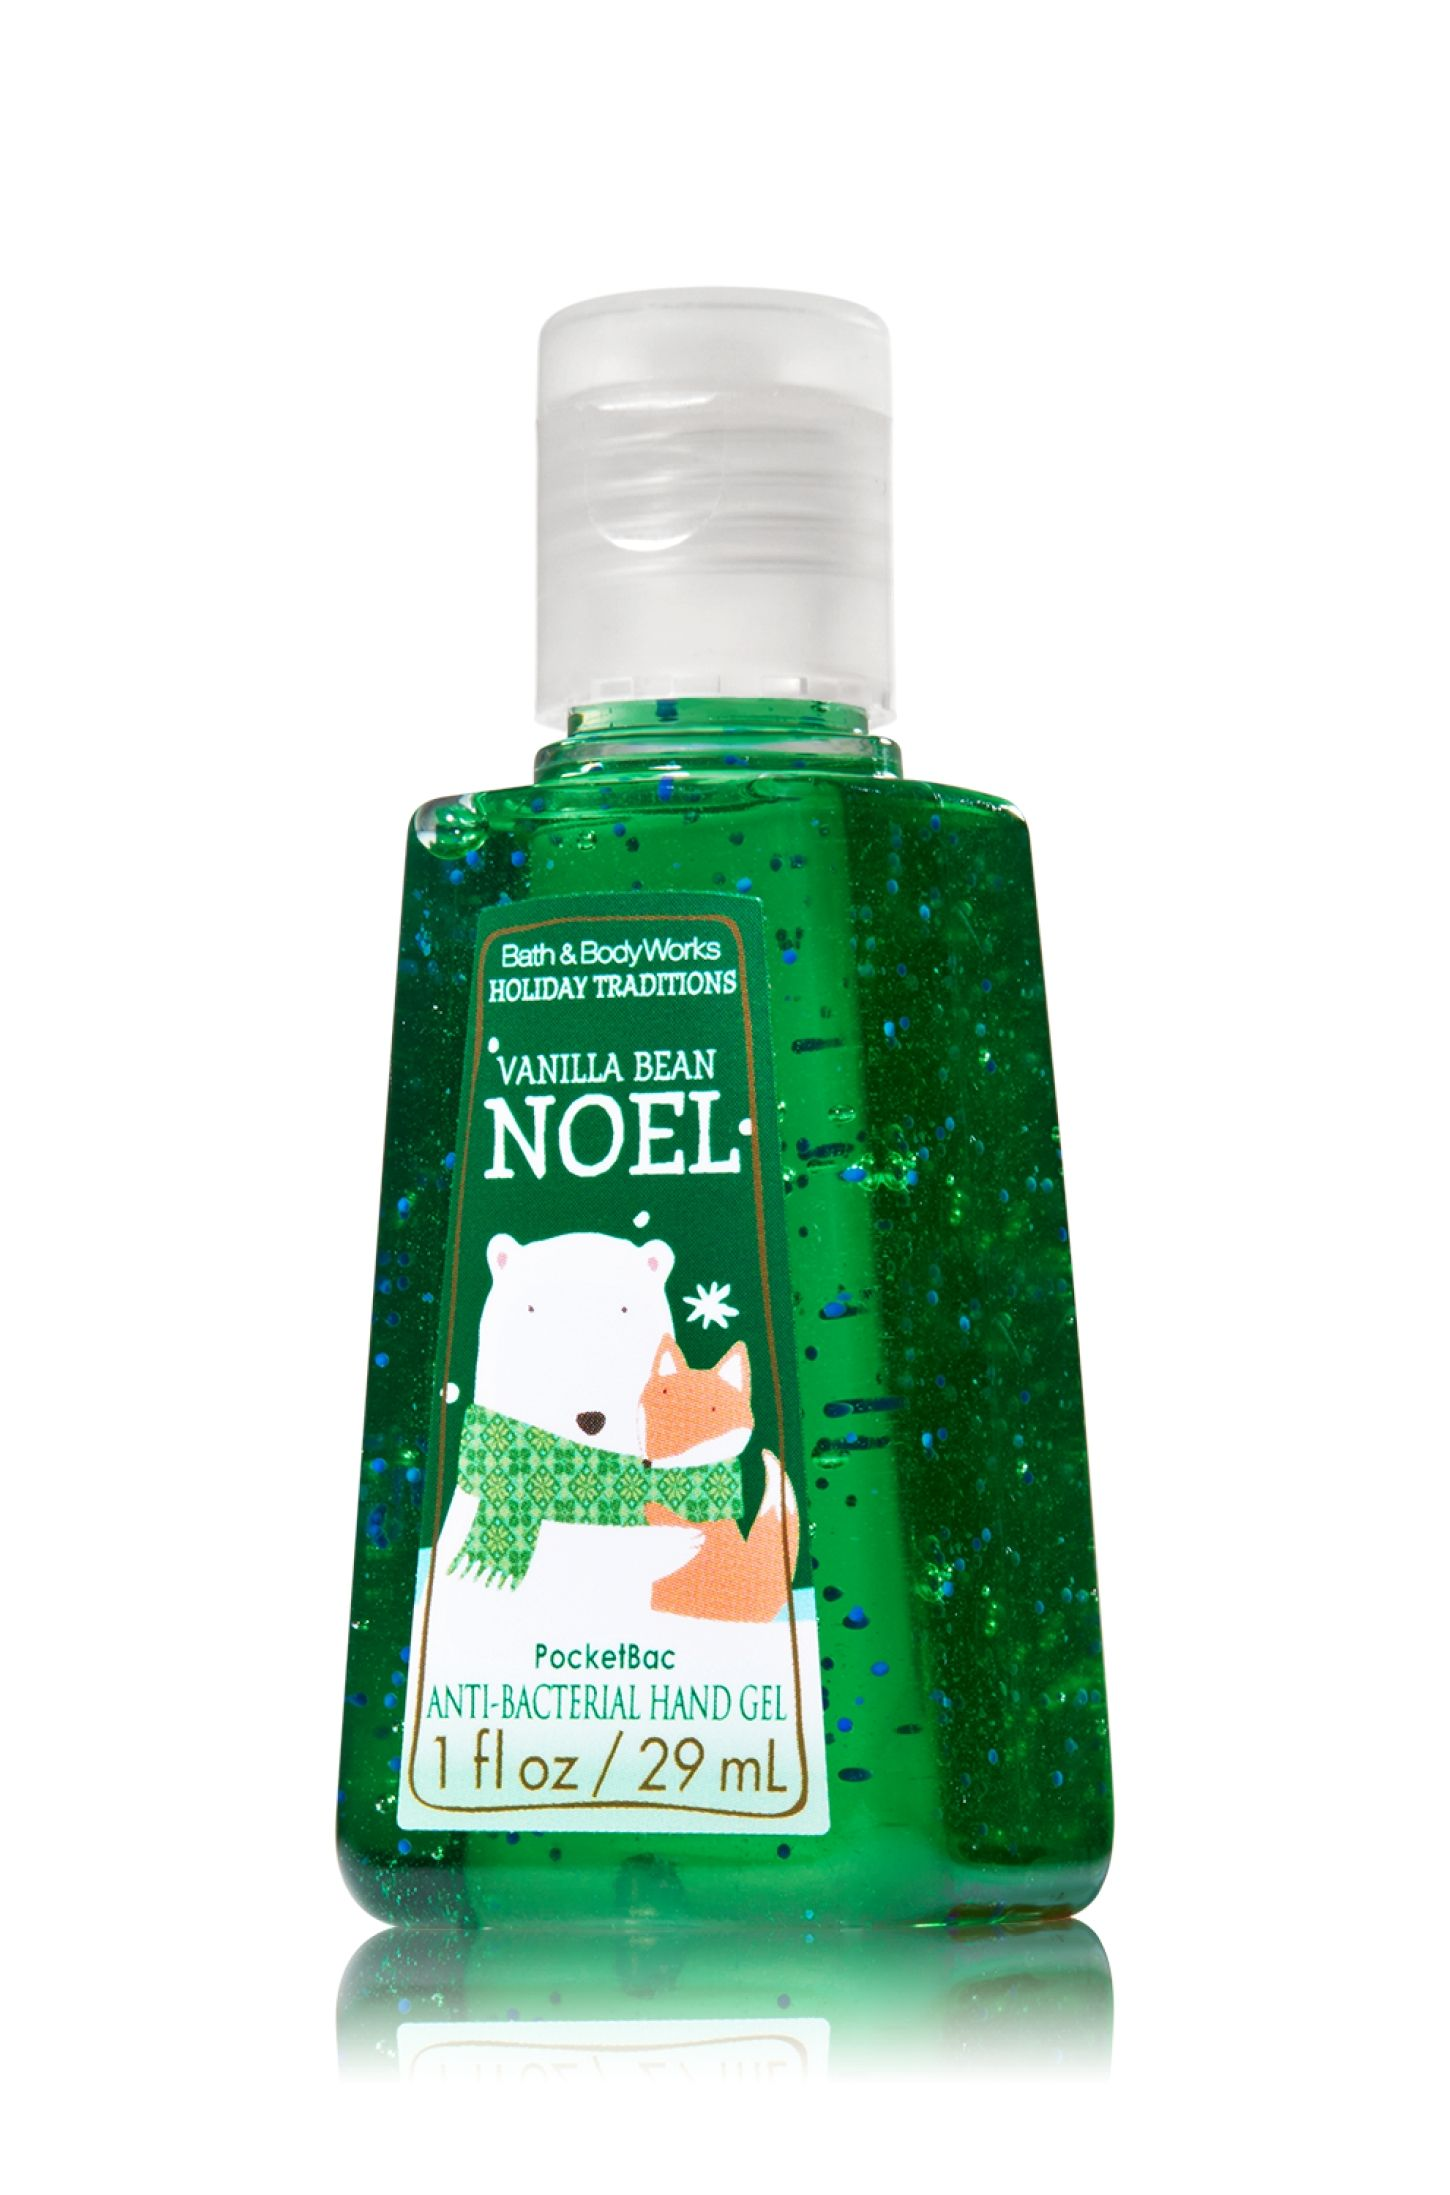 Also In The Top Two Christmas Smells Are The Best Smells That